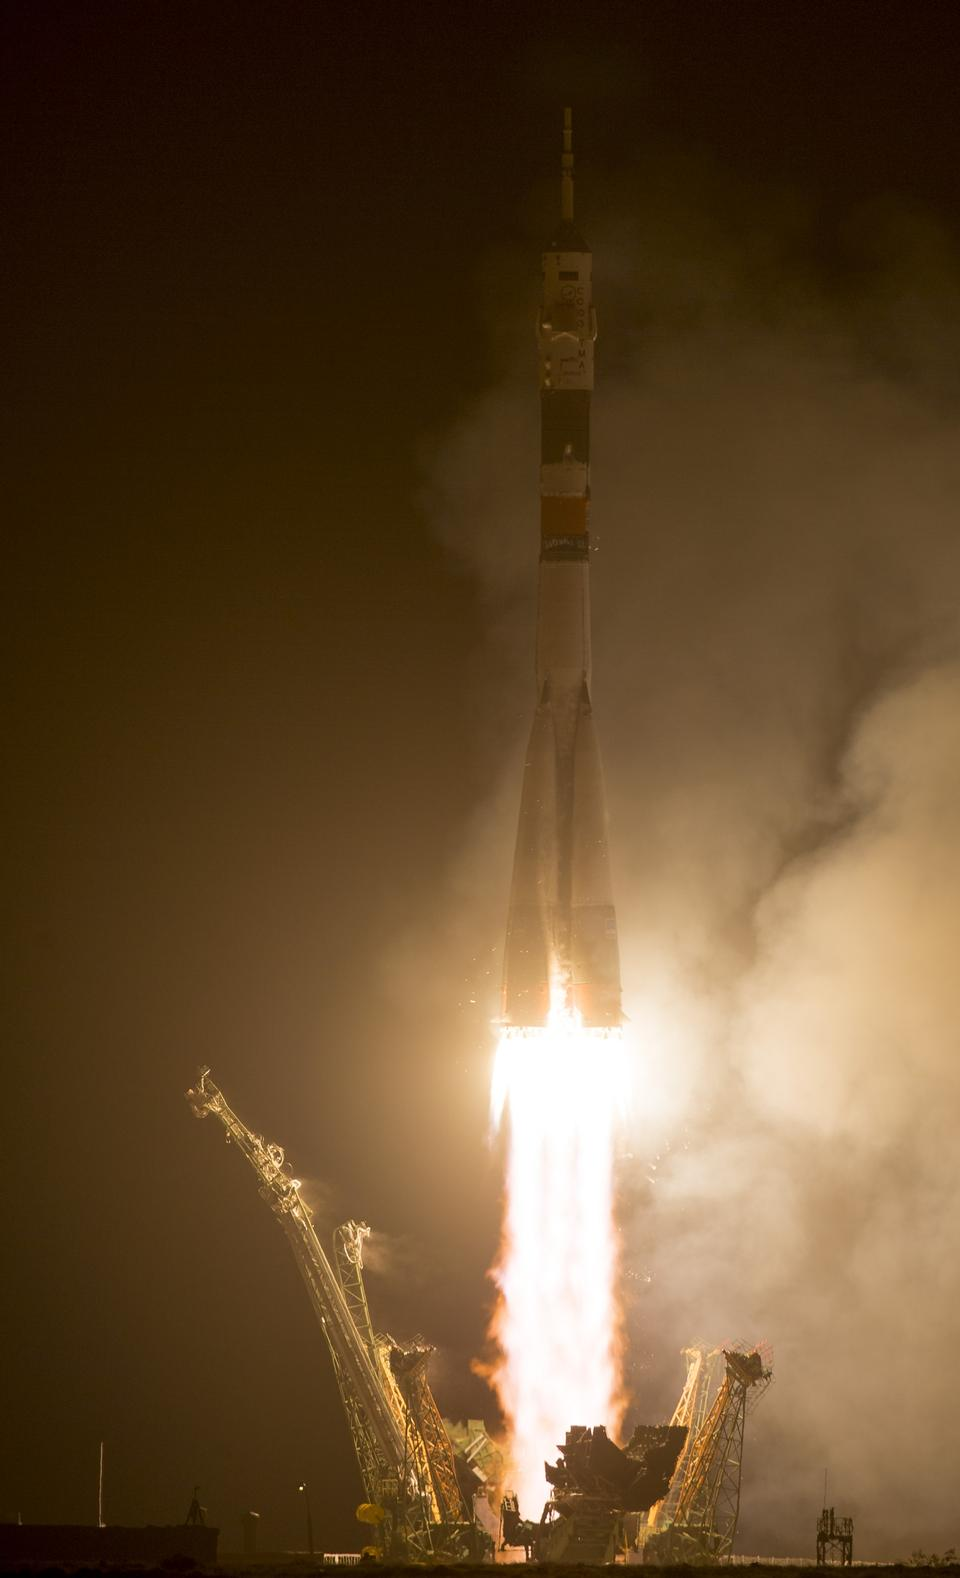 Expedition 40 Launches to the International Space Station